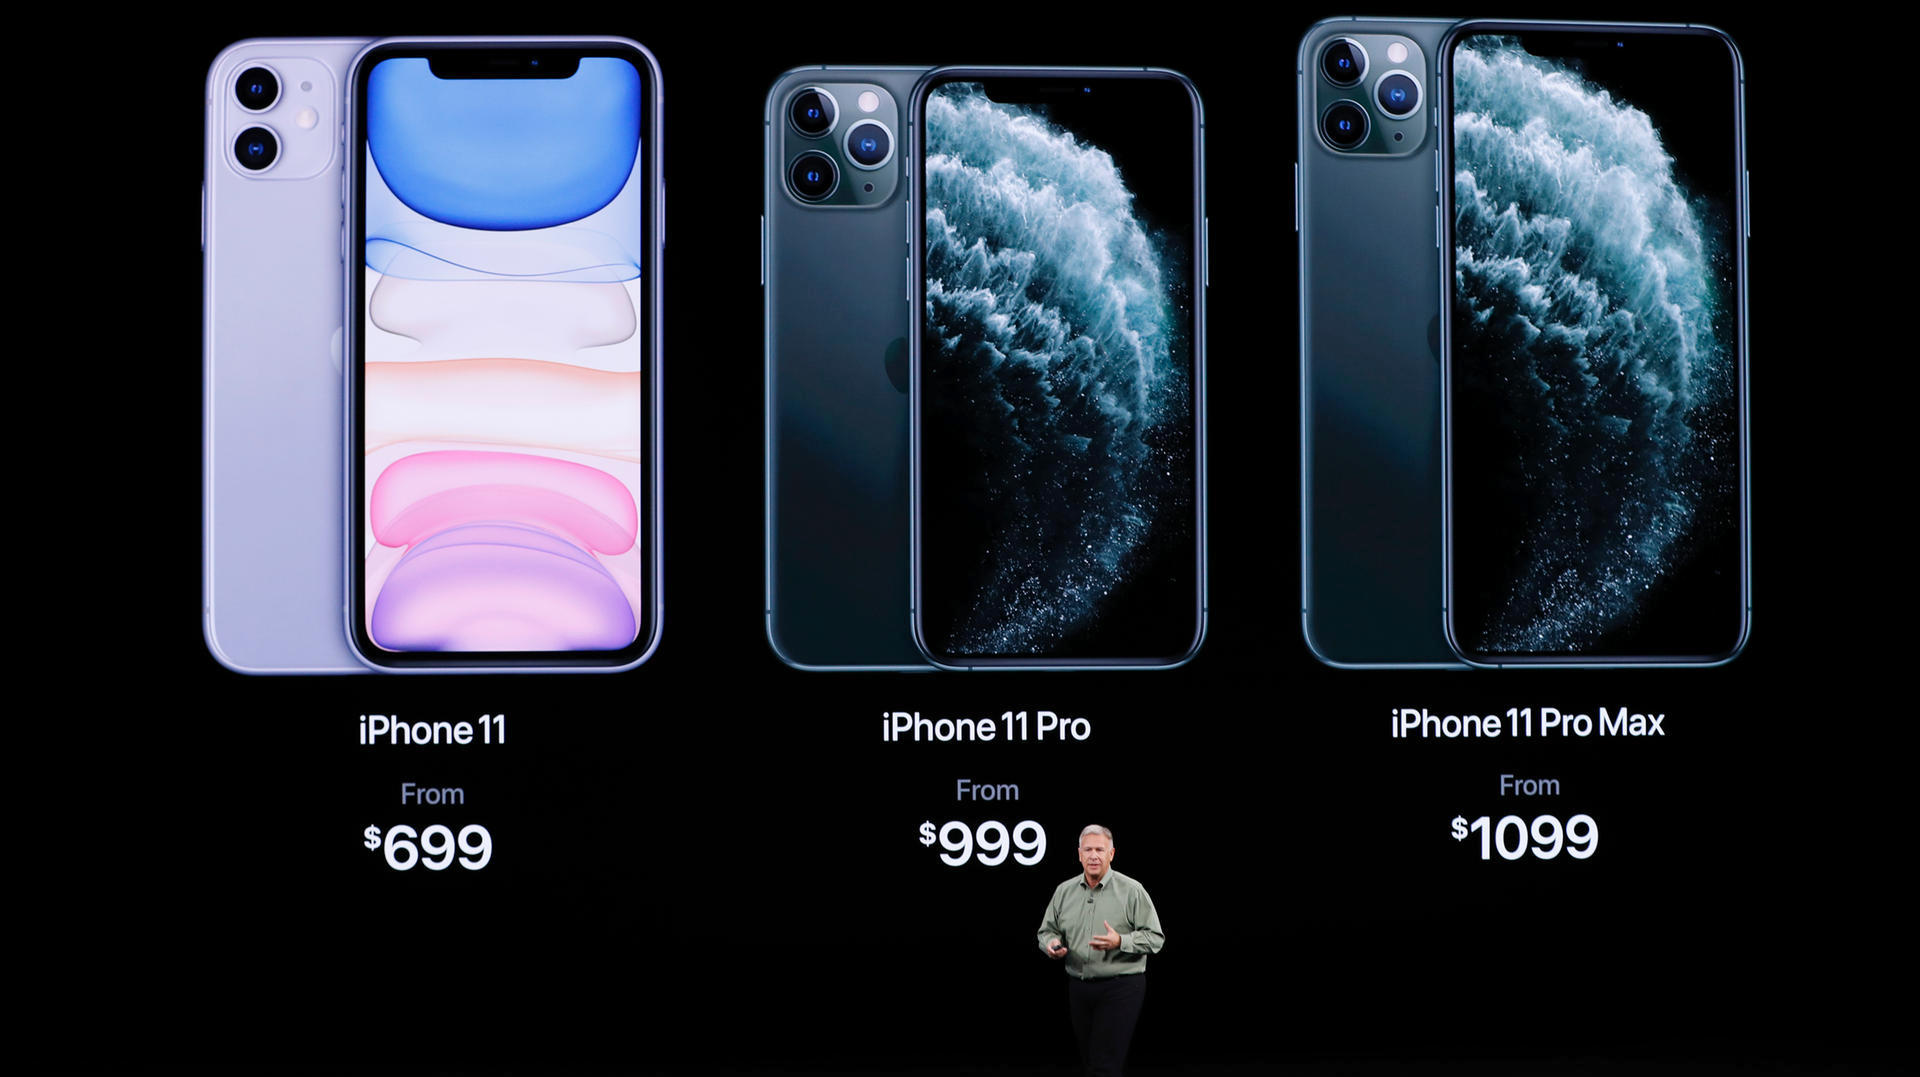 apple keynote 2019 iphone 11 auf diese neuigkeiten. Black Bedroom Furniture Sets. Home Design Ideas